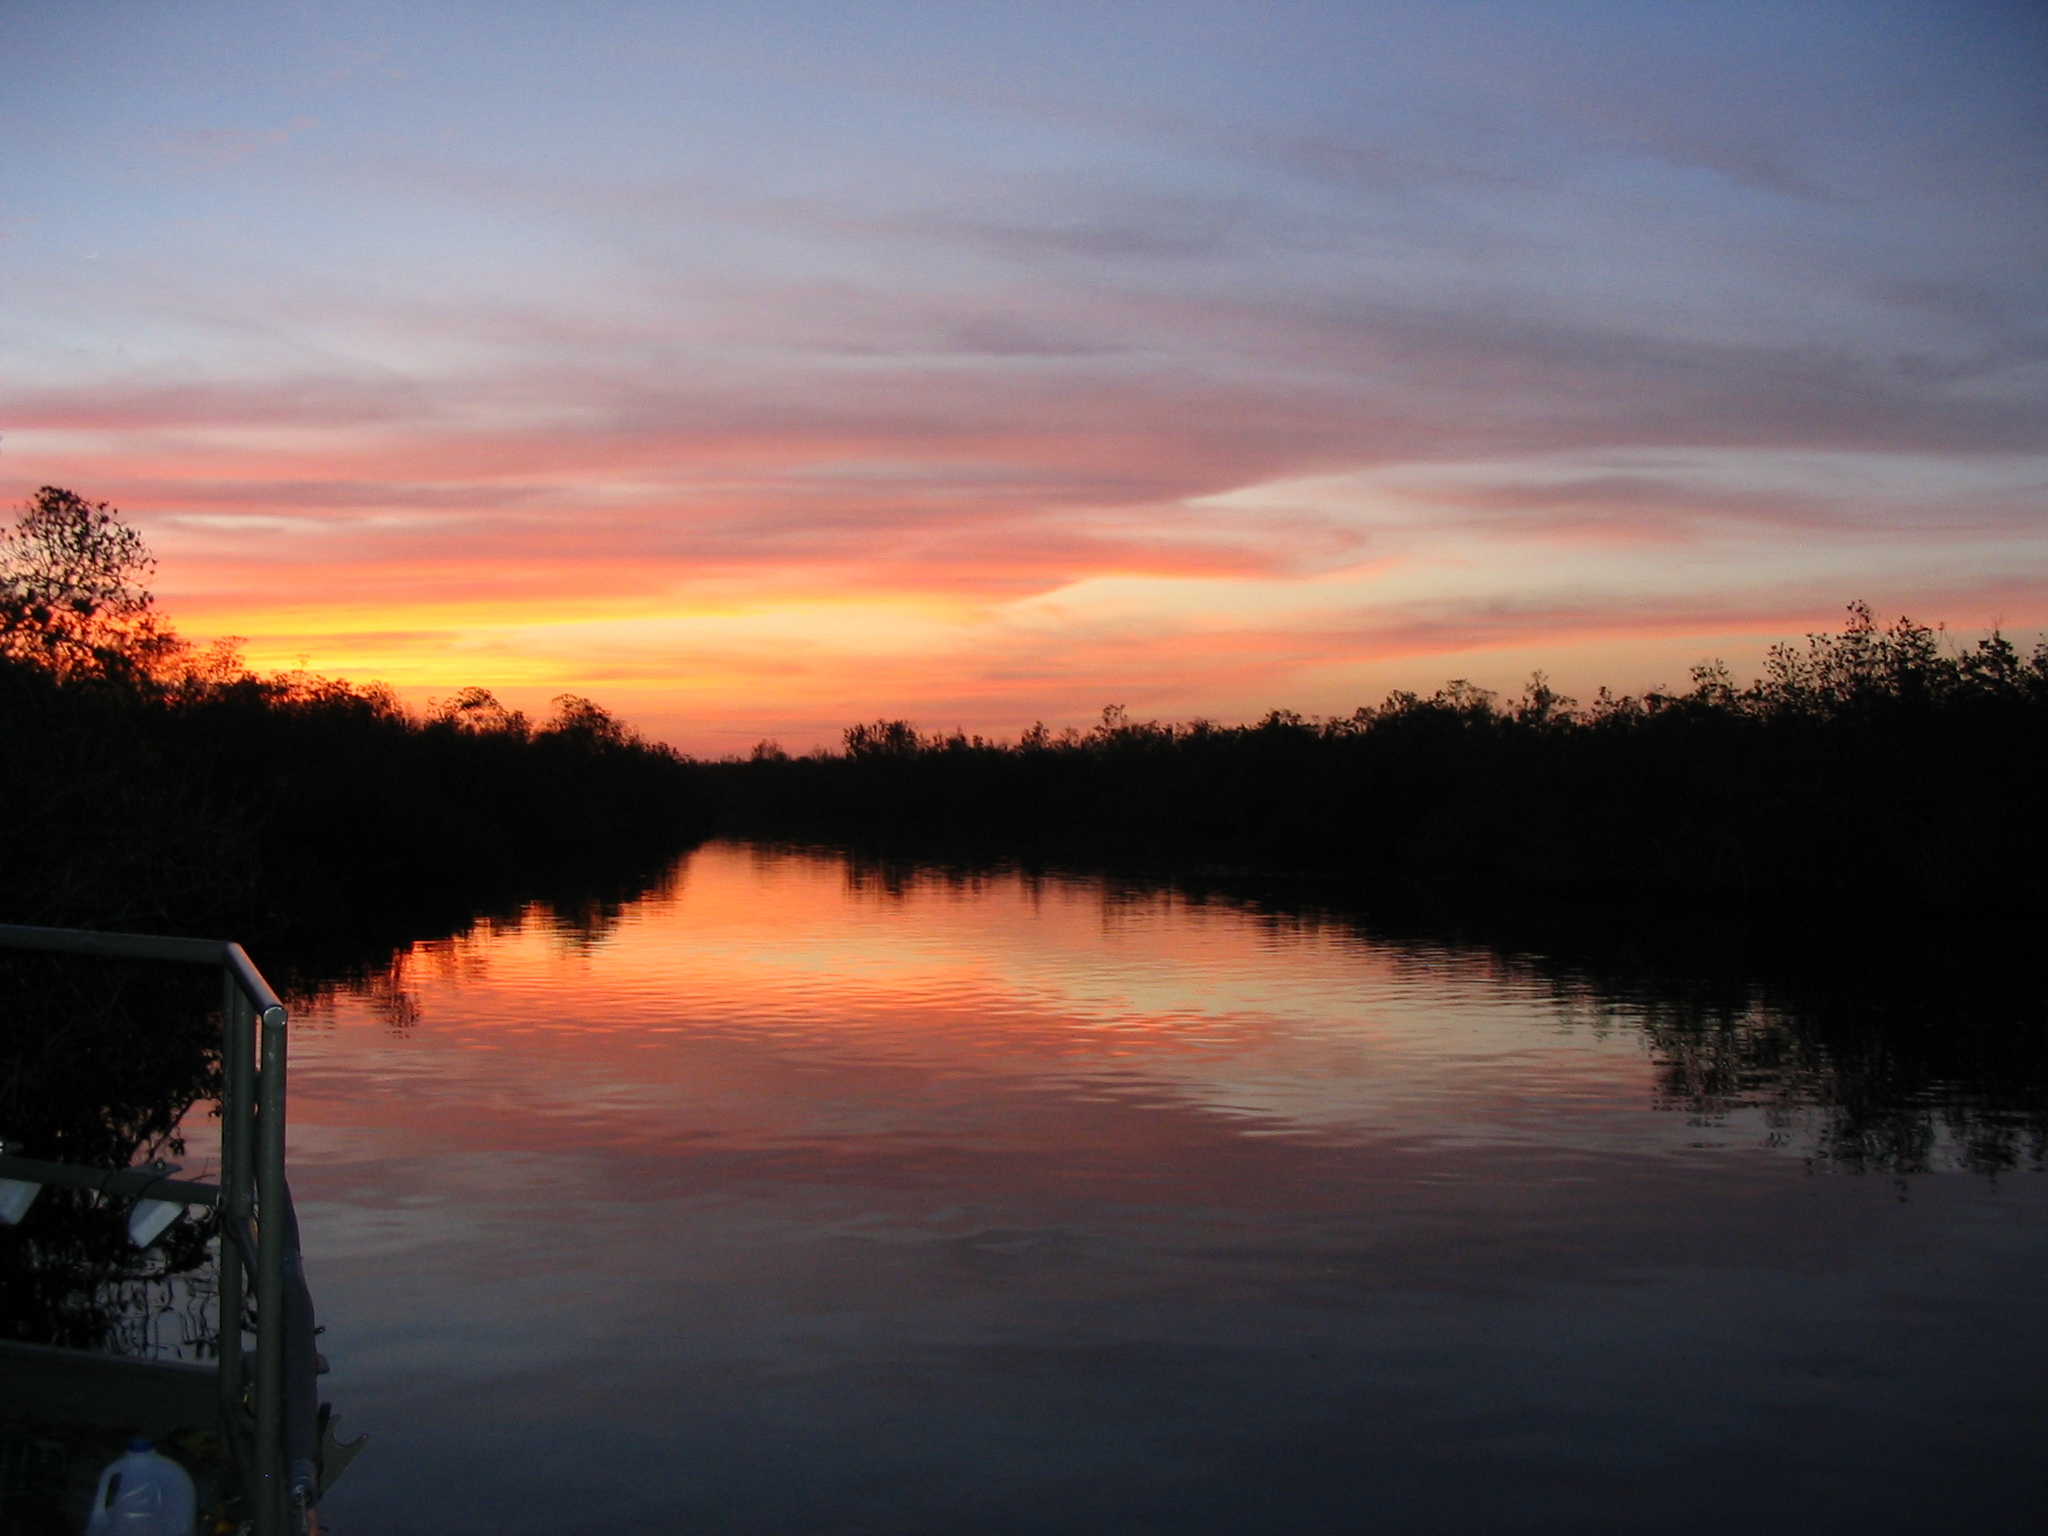 A sunset over the water in the Everglades